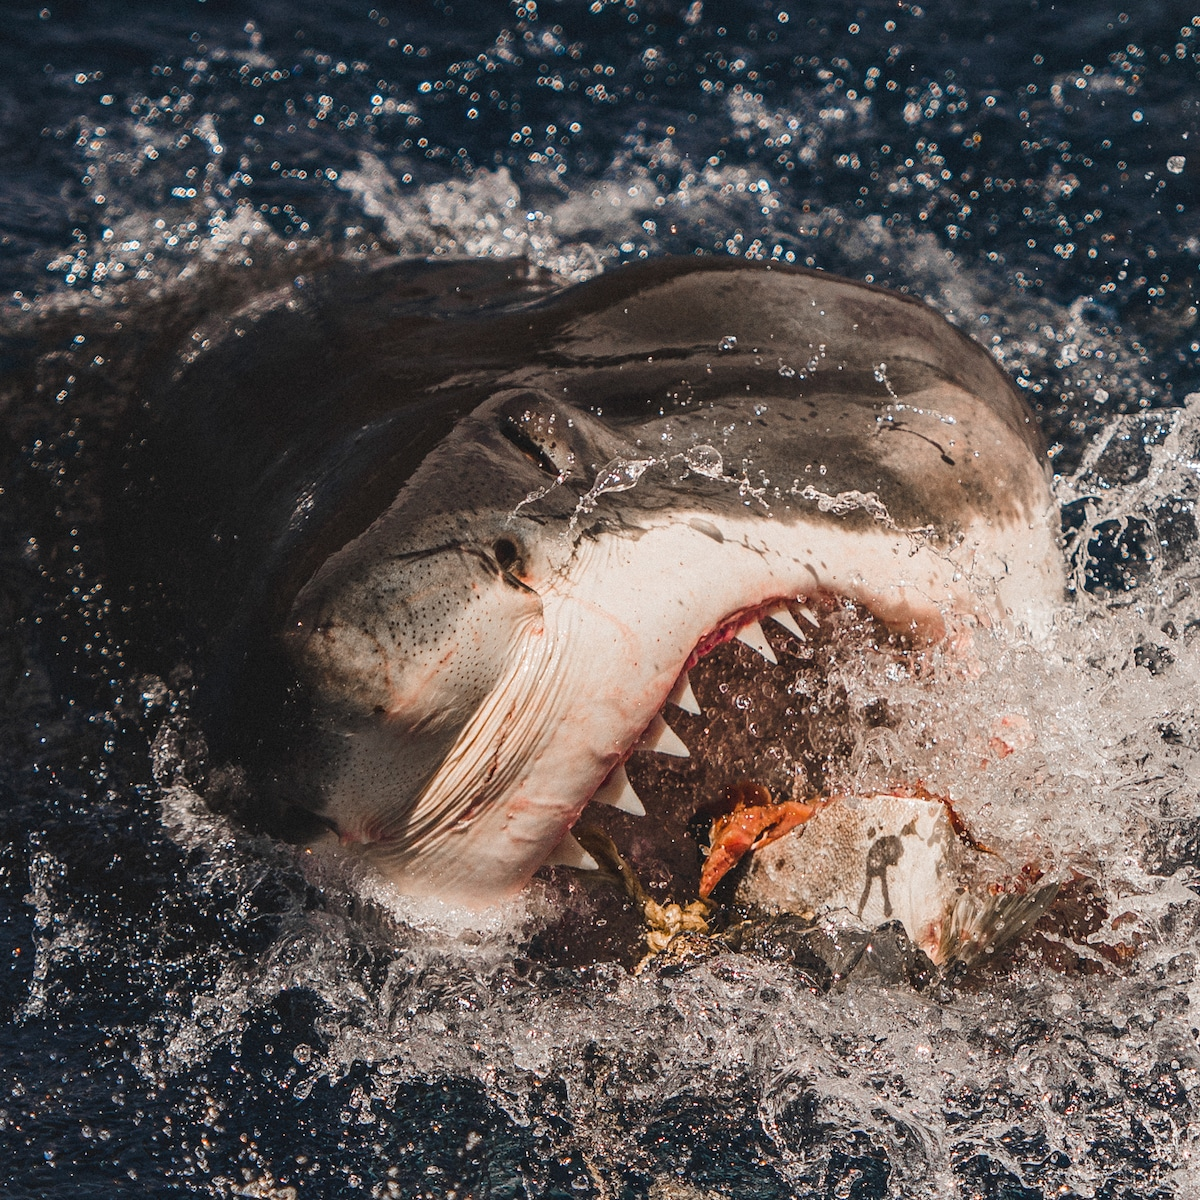 Shark Photography by Euan Rannachan